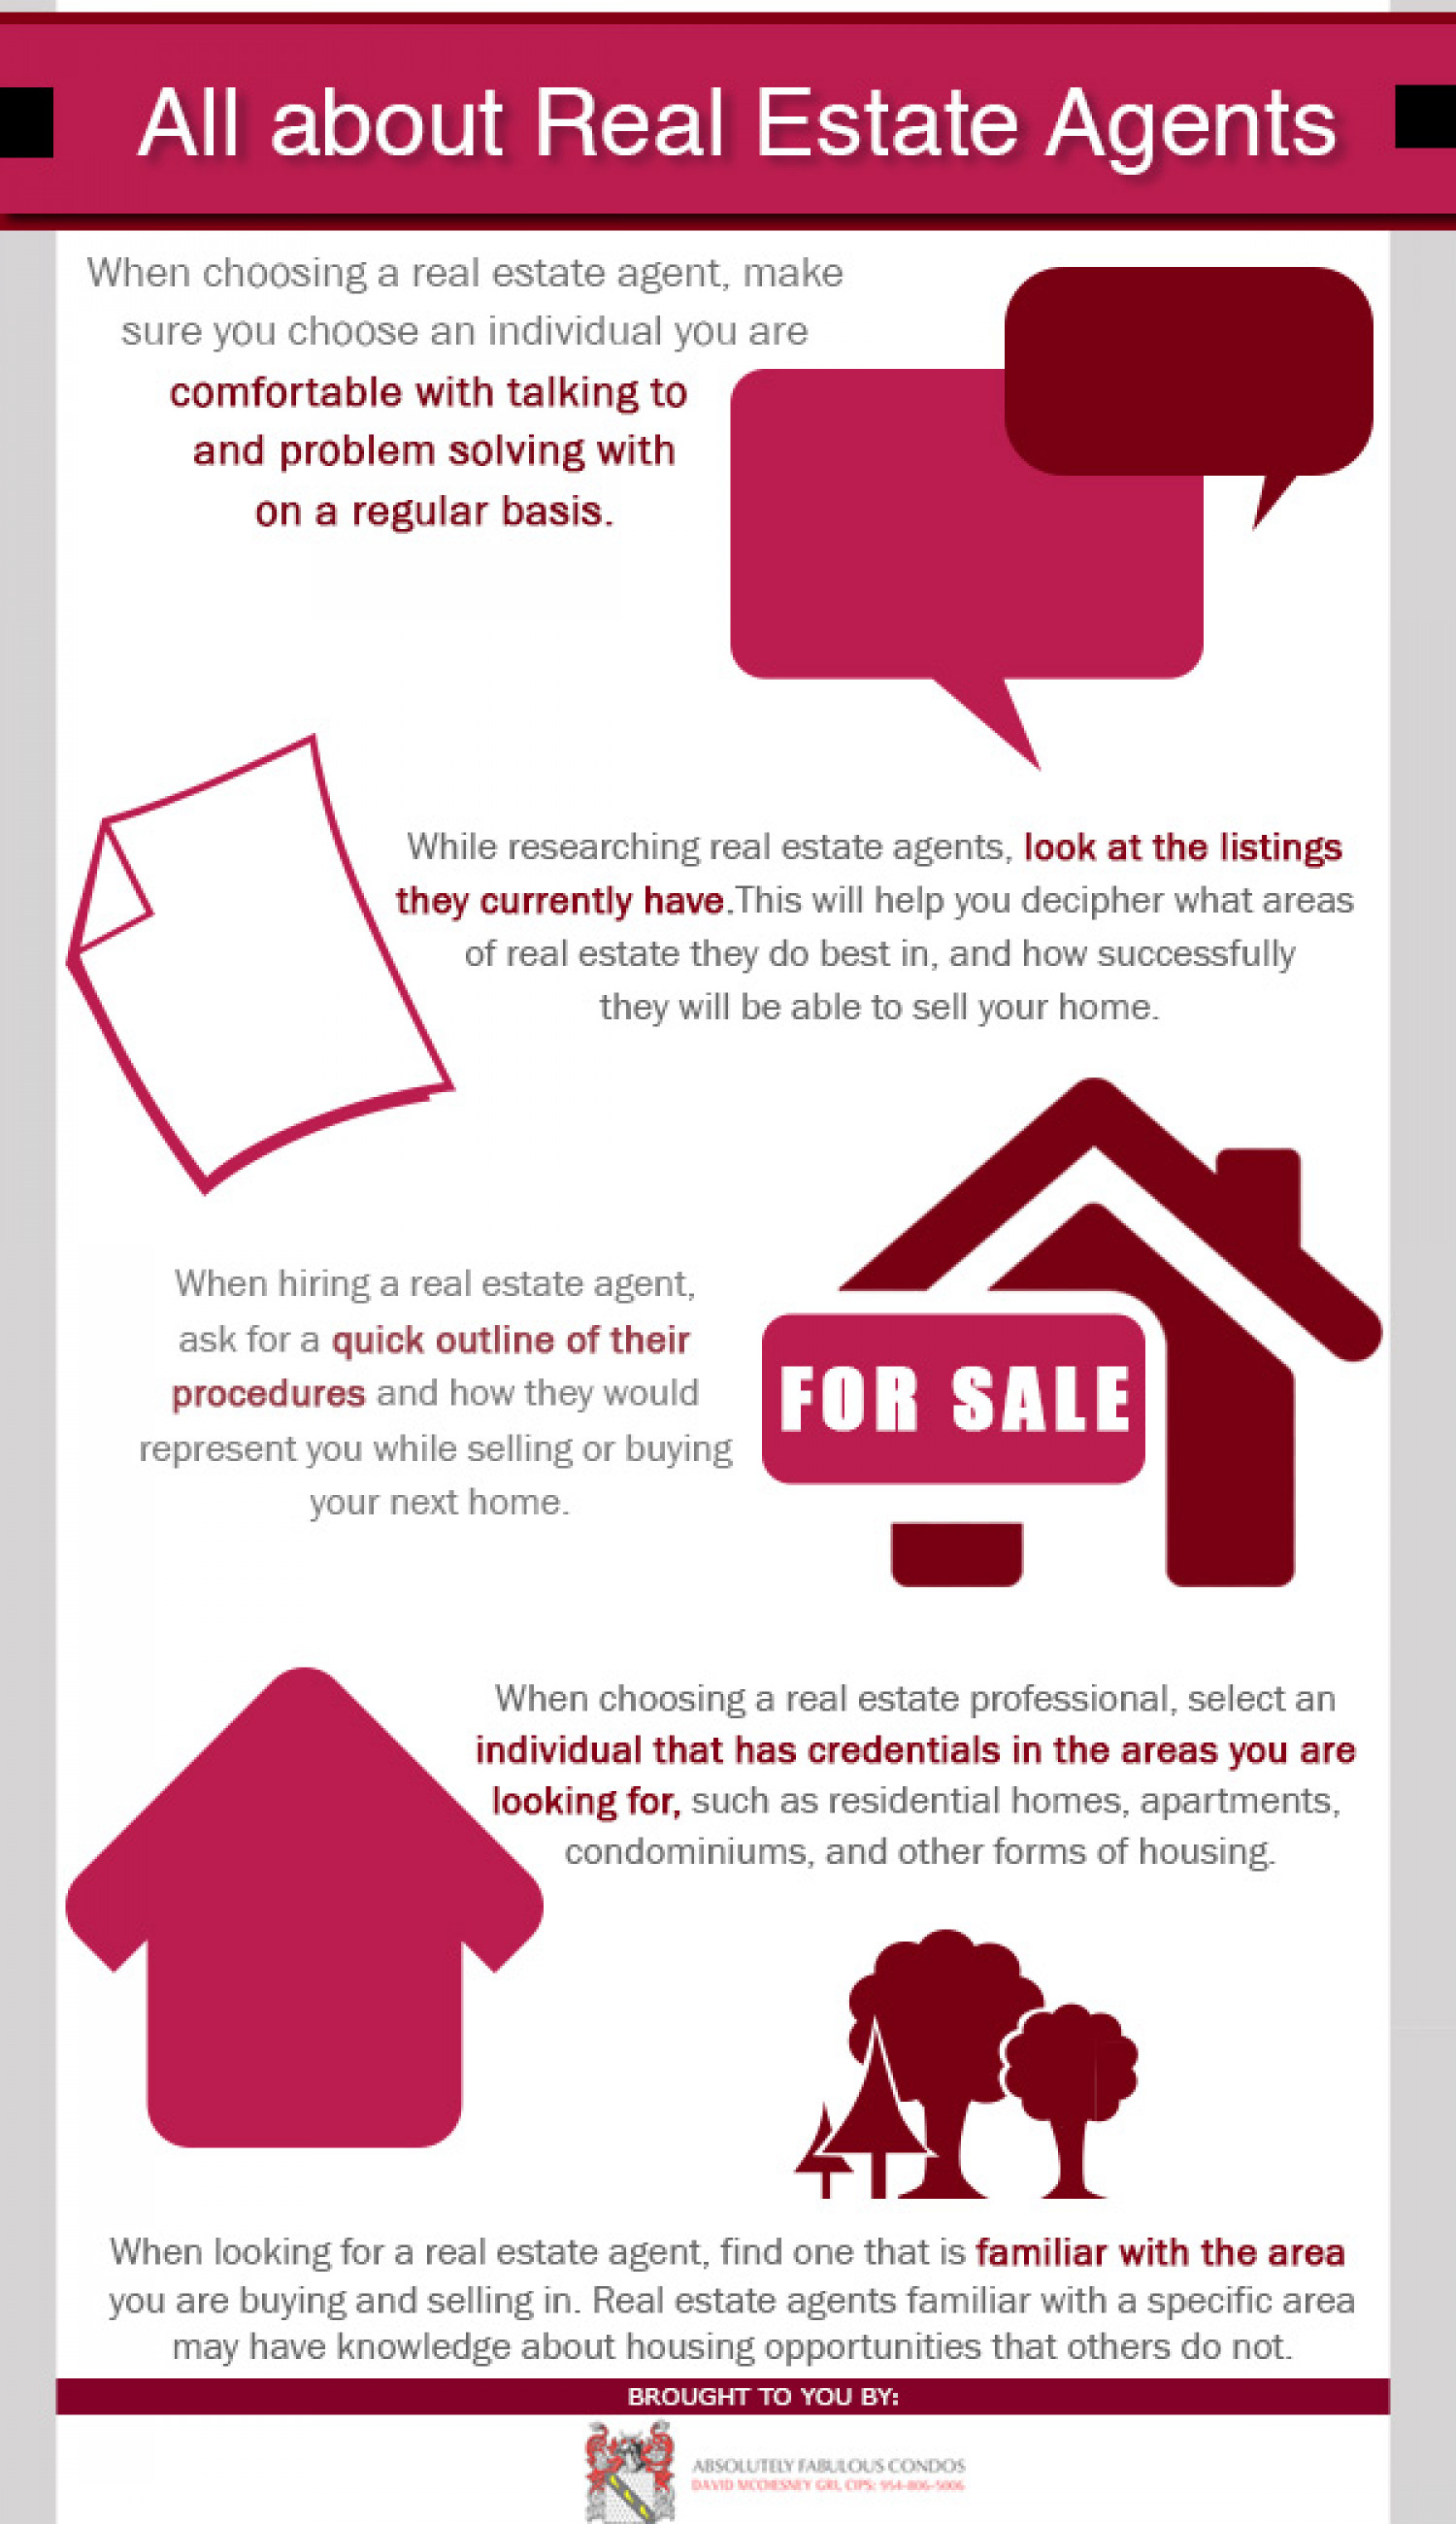 All About Real Estate Agents Infographic